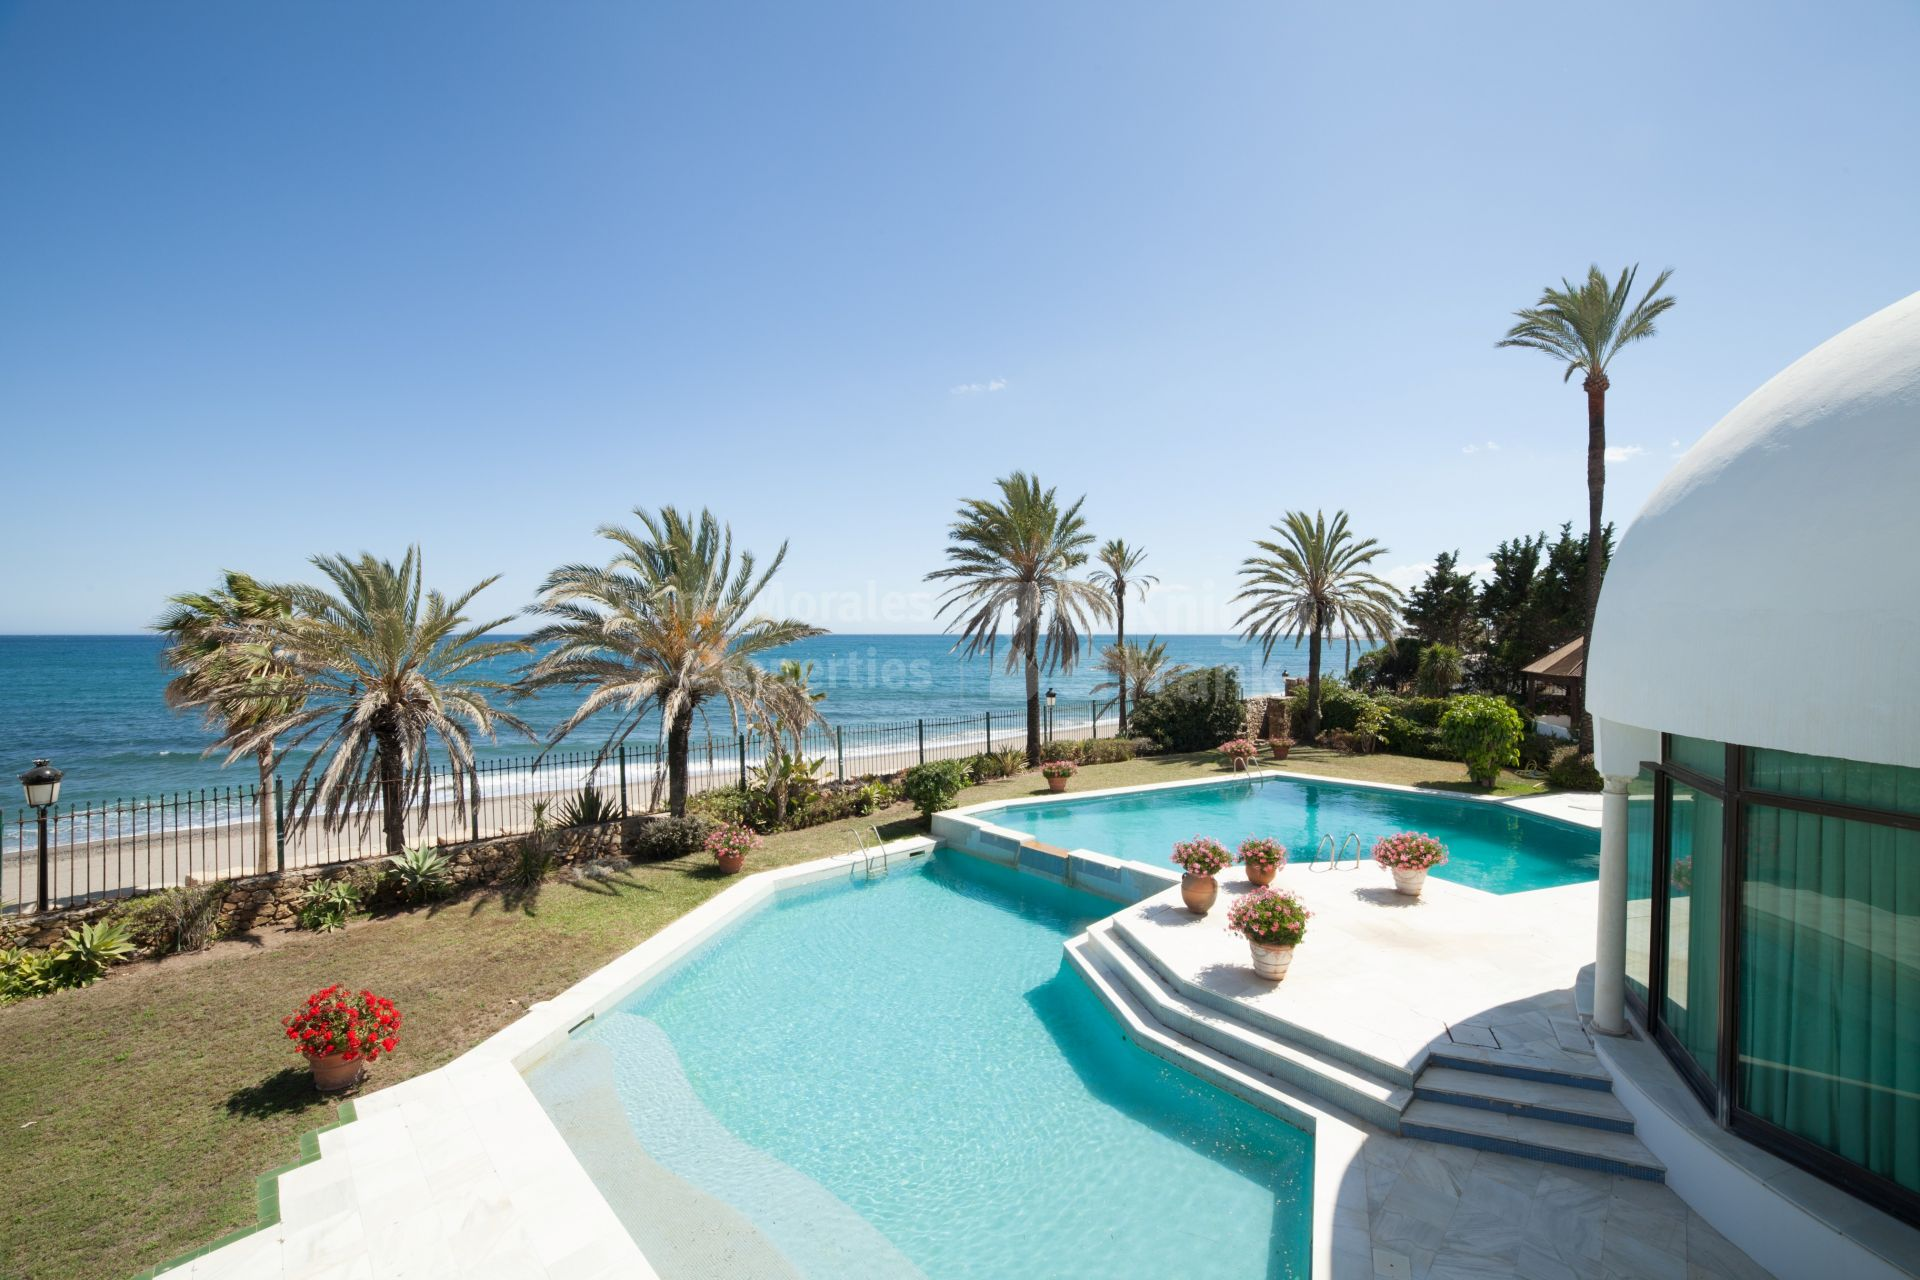 Luxury villas for sale in beach side golden mile marbella - Iproperty marbella ...